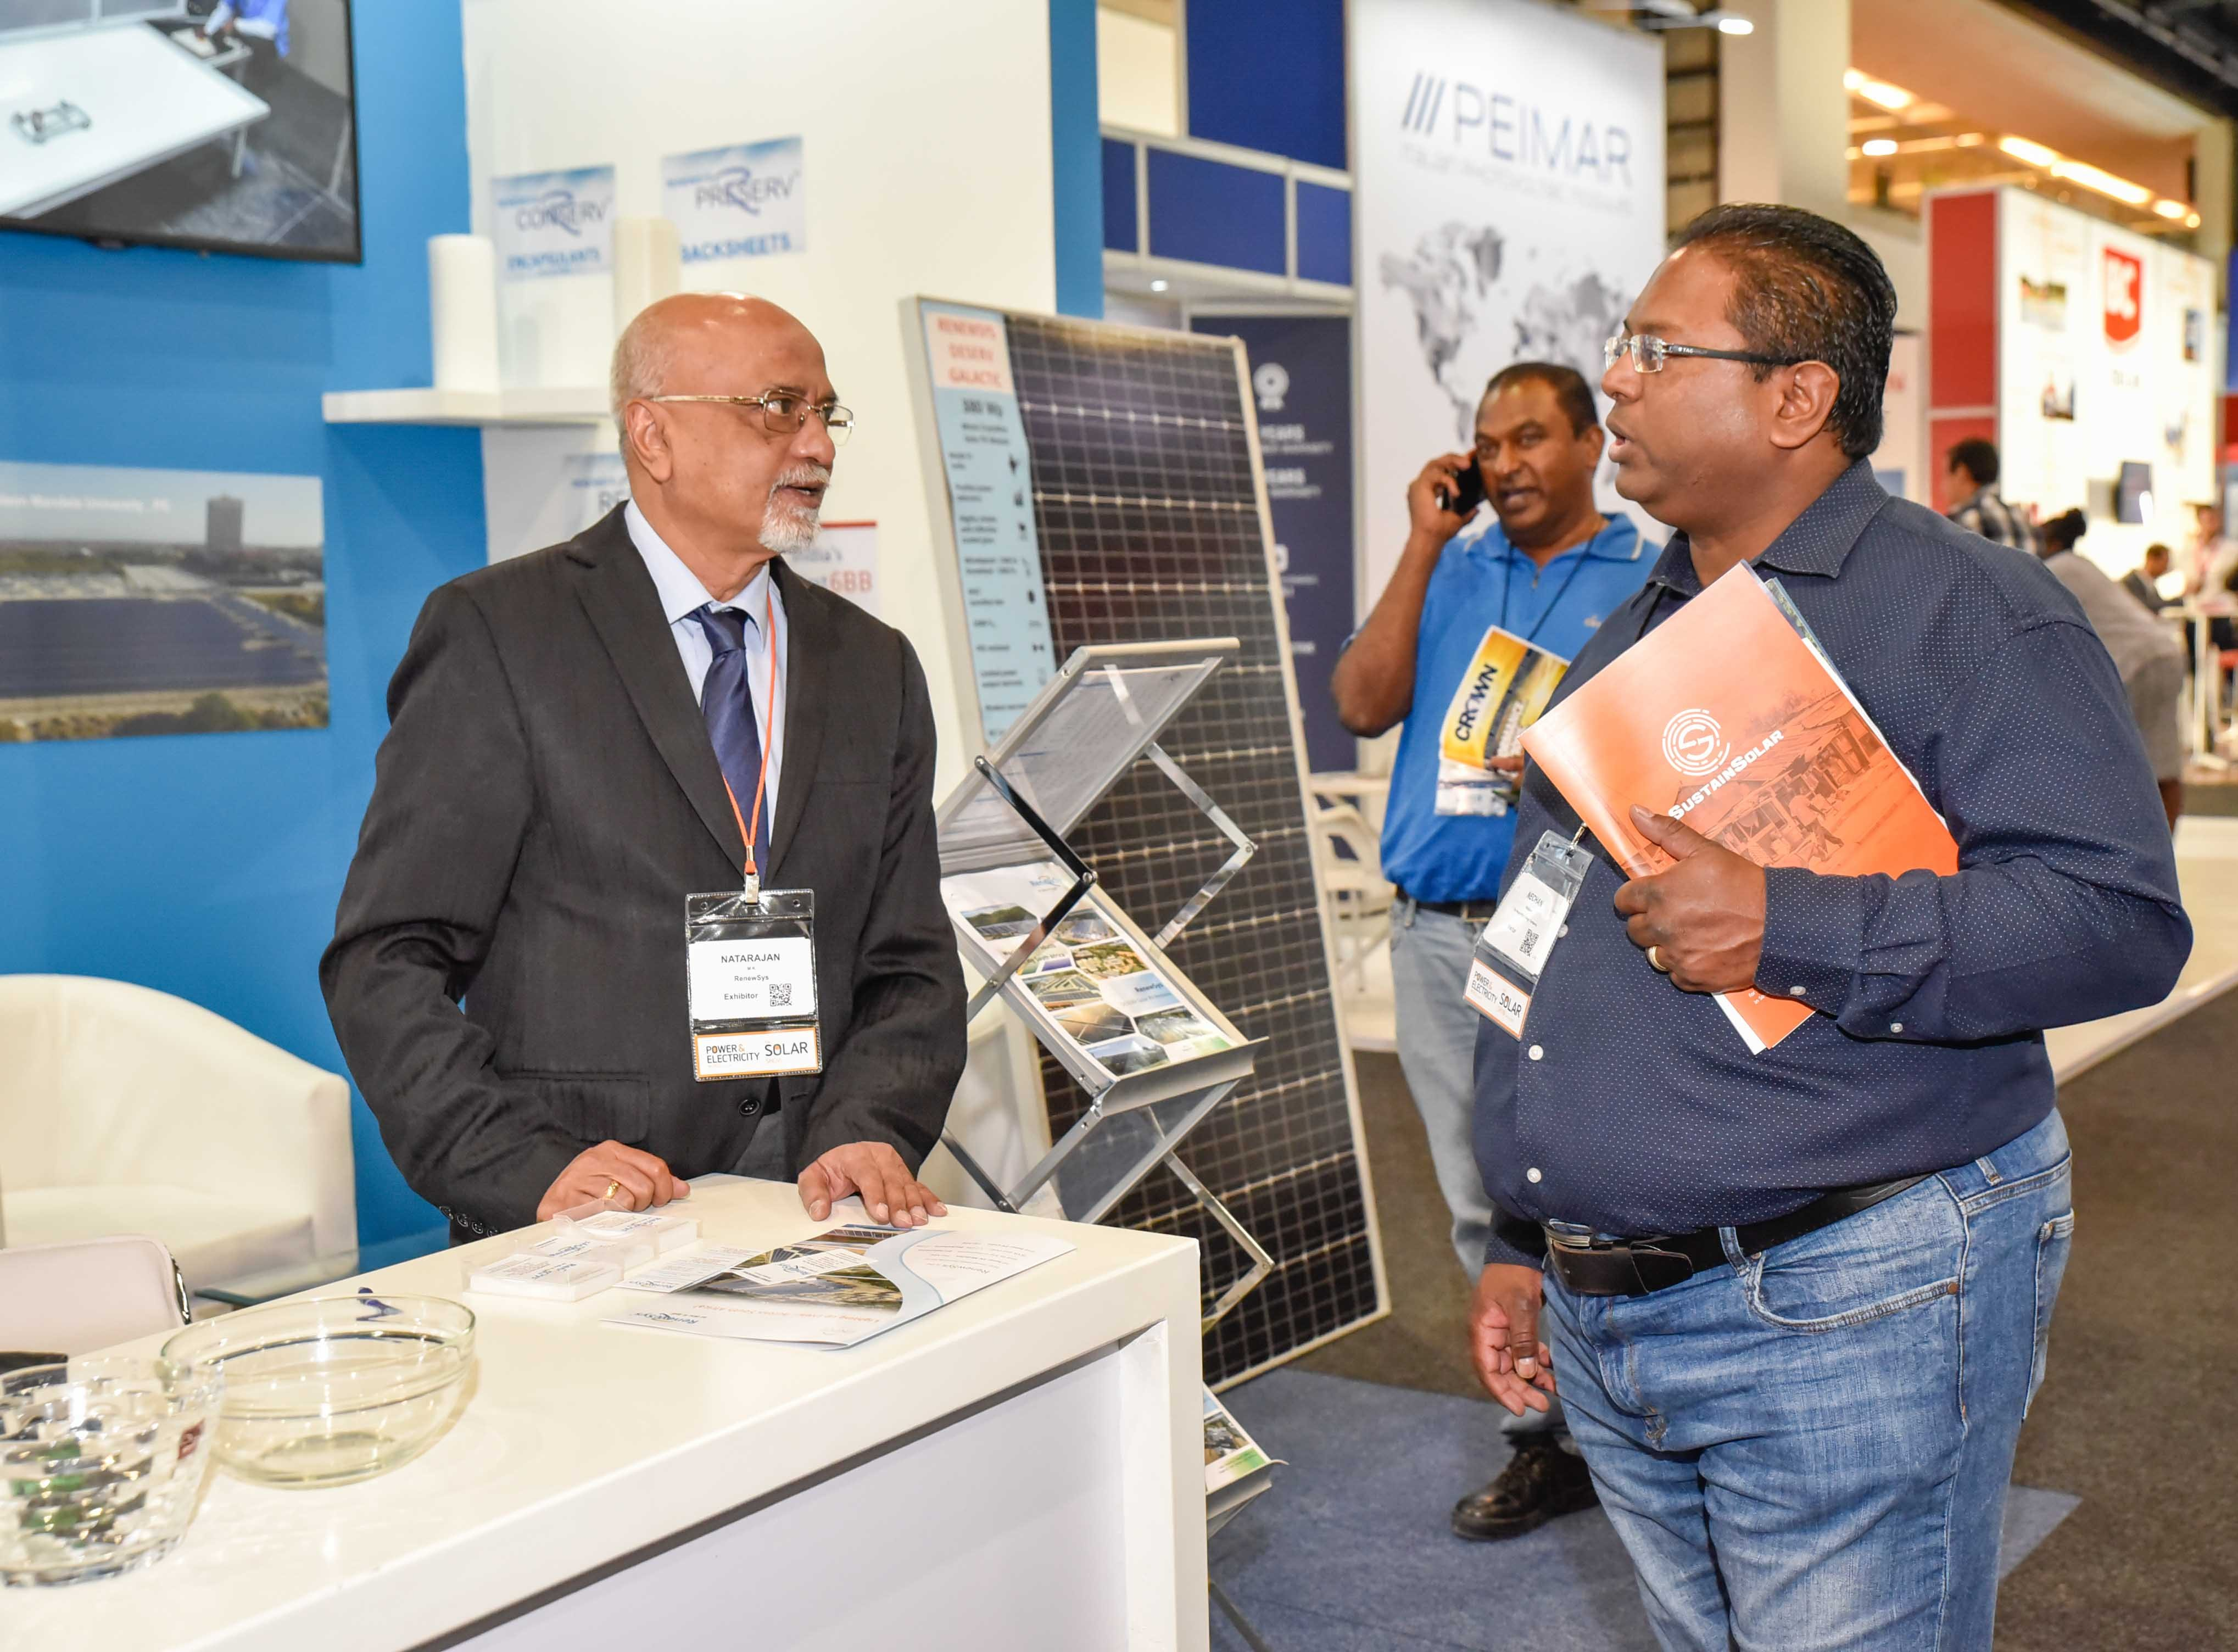 RenewSys booth at the Solar Show Africa.